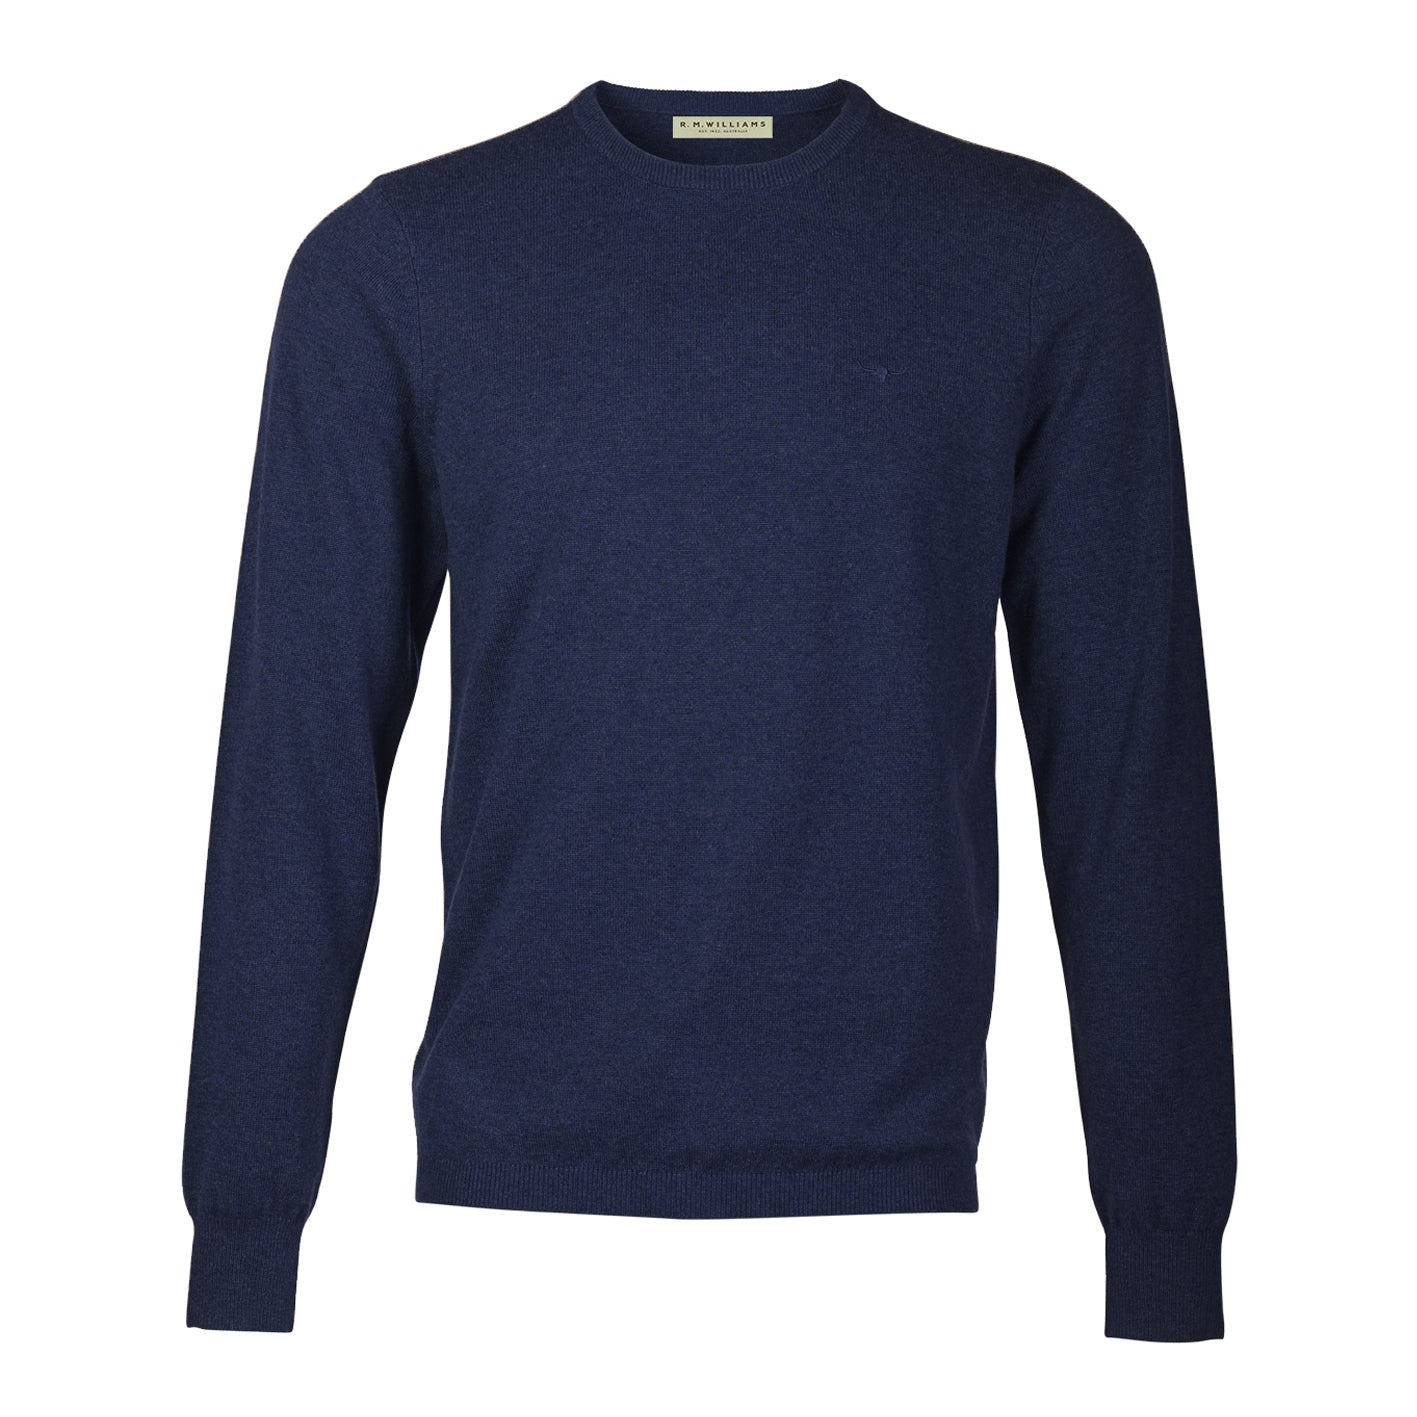 RM Williams Howe Sweater (4498162581641)